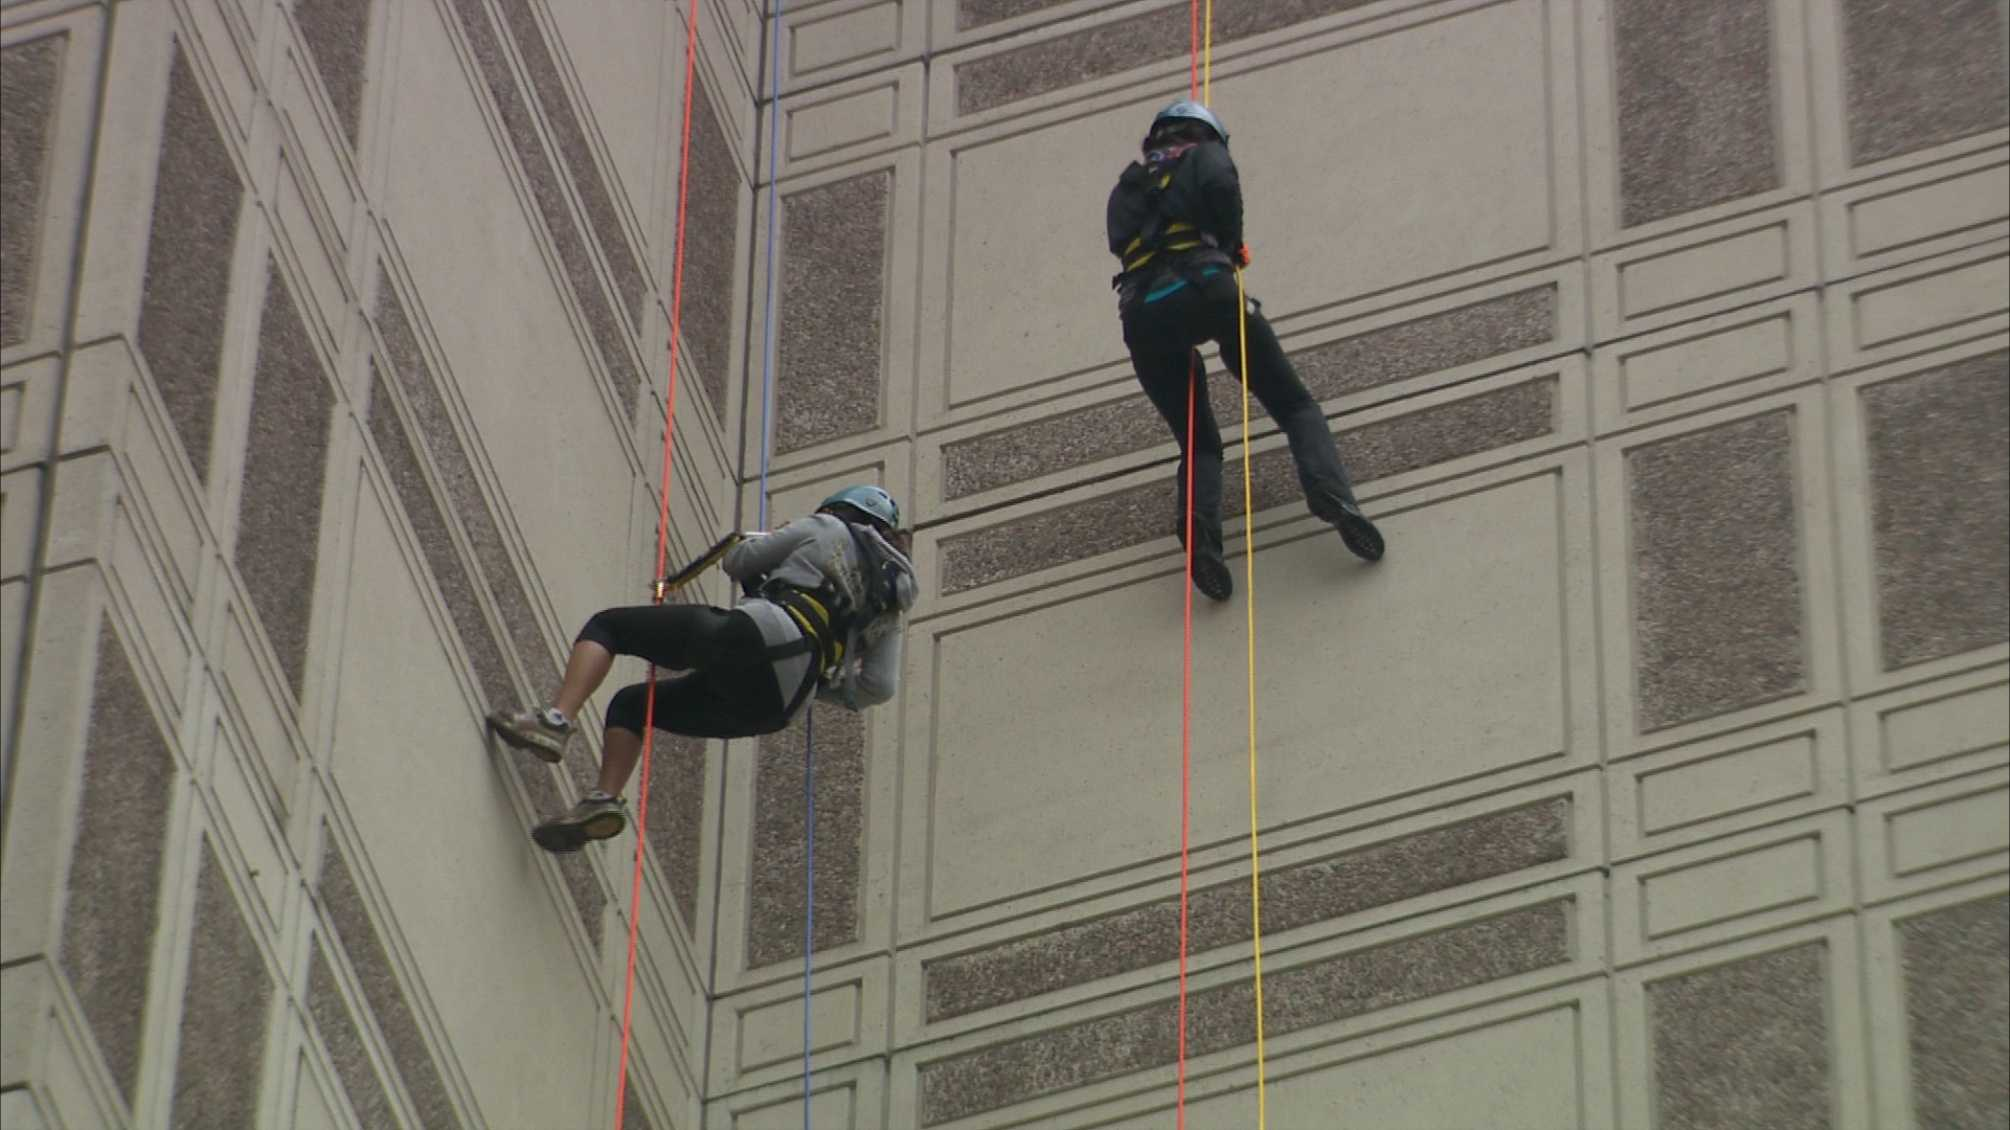 Nearly 100 people scaled down the side of the Westin Convention Center hotel in downtown Pittsburgh to raise awareness and funds for Shatterproof, an organization that helps fight addiction.